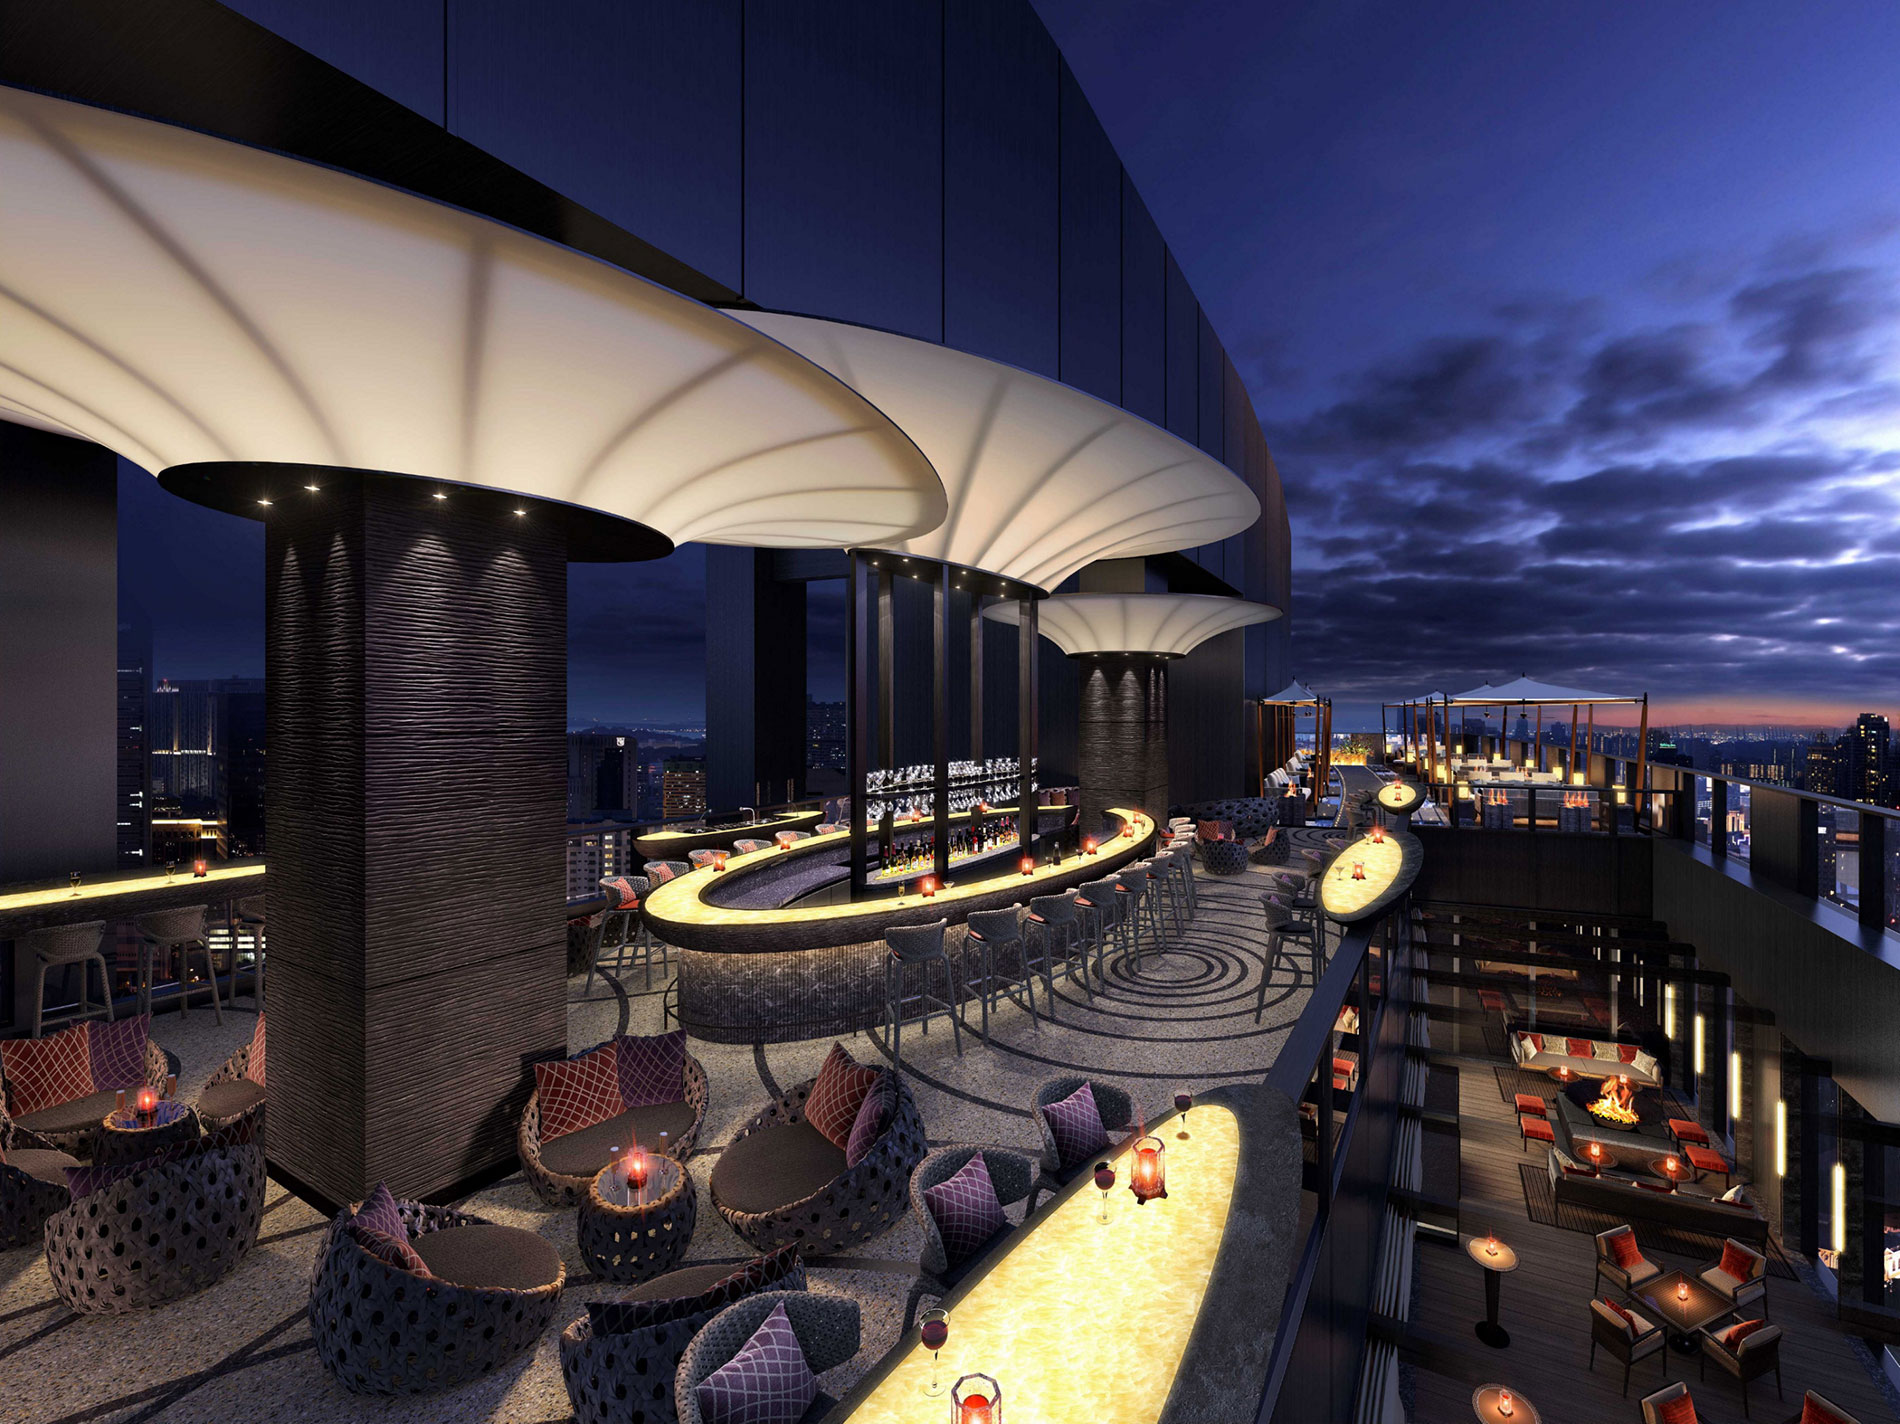 Rosewood chongqing china to open 2015 for The rosewood